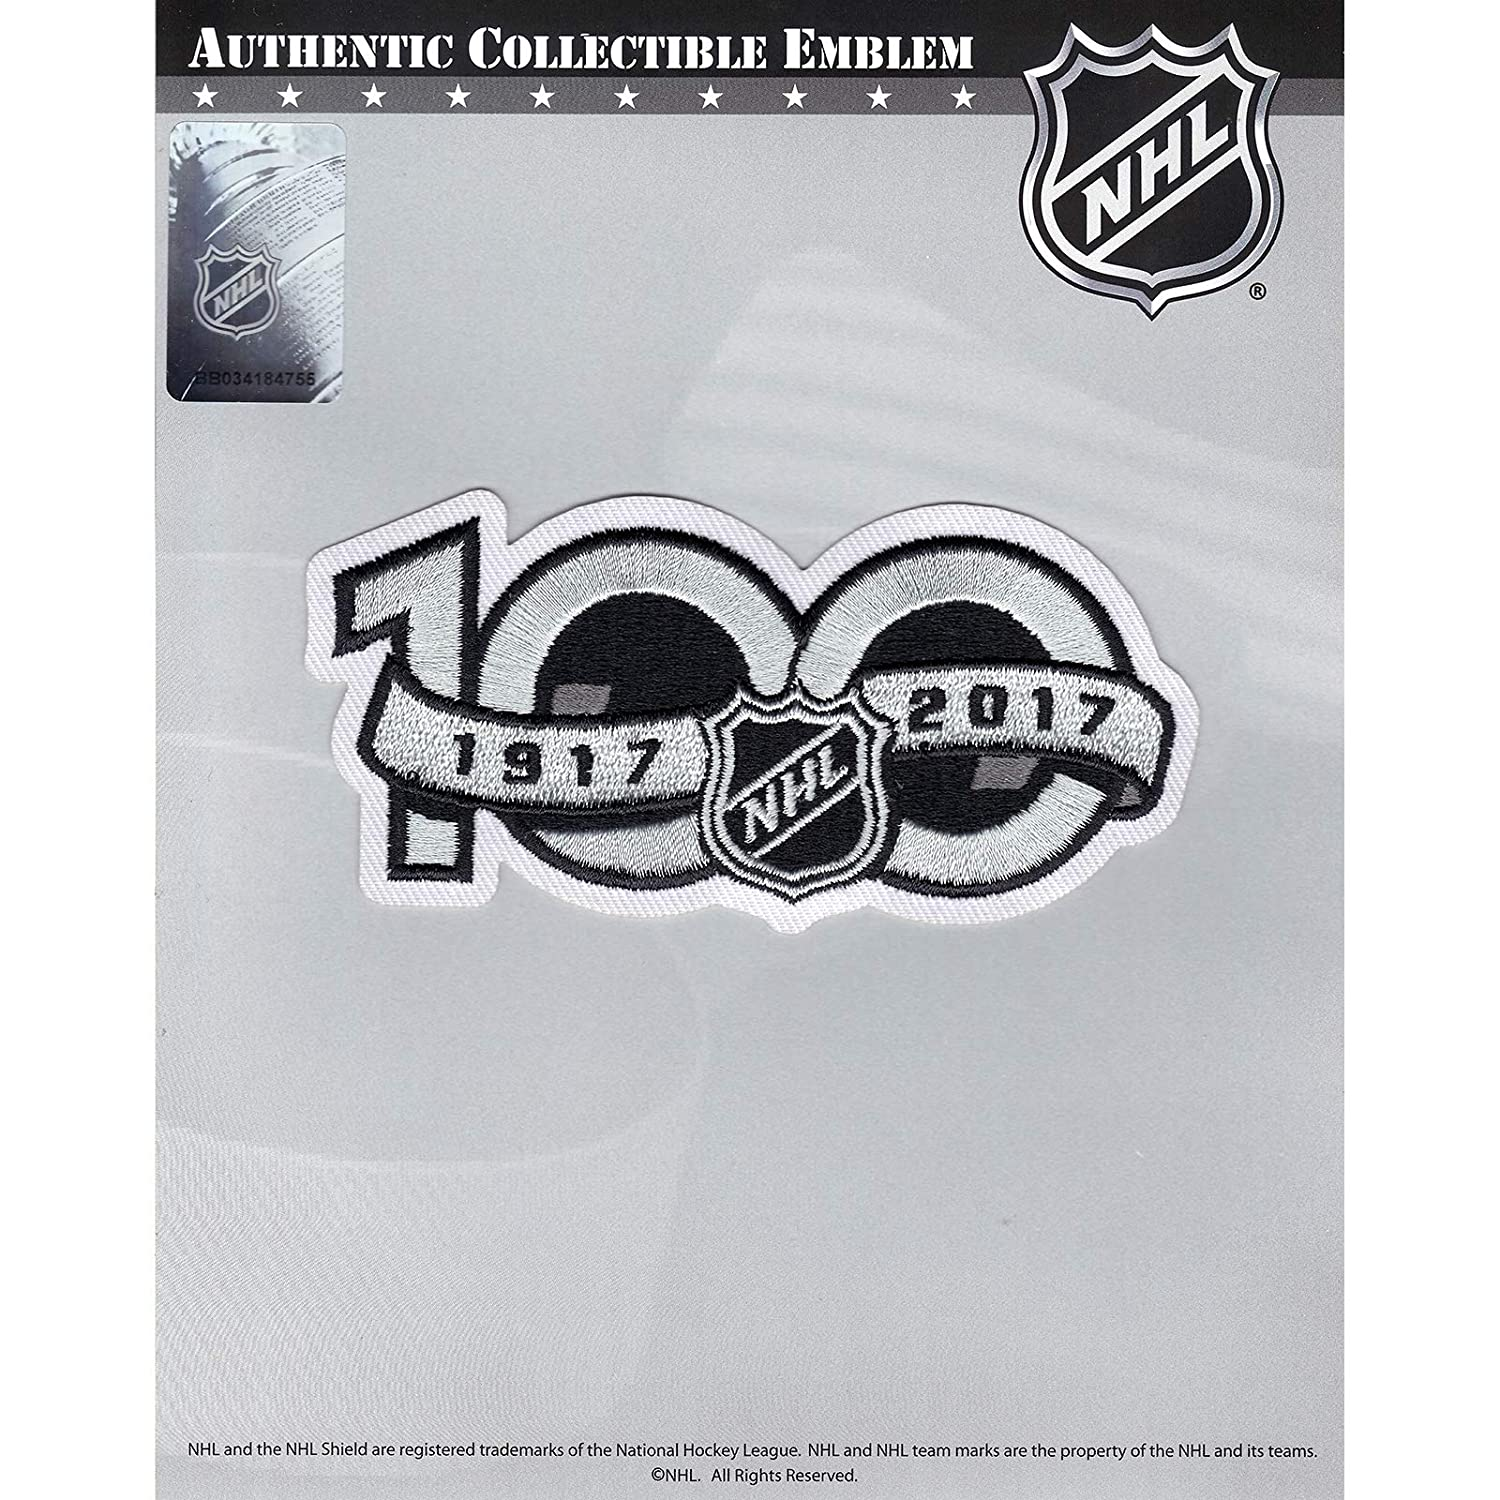 678cccbf0 Amazon.com   National Hockey League NHL 100th Anniversary Jersey Sleeve  Logo Patch 2017 Season   Sports   Outdoors